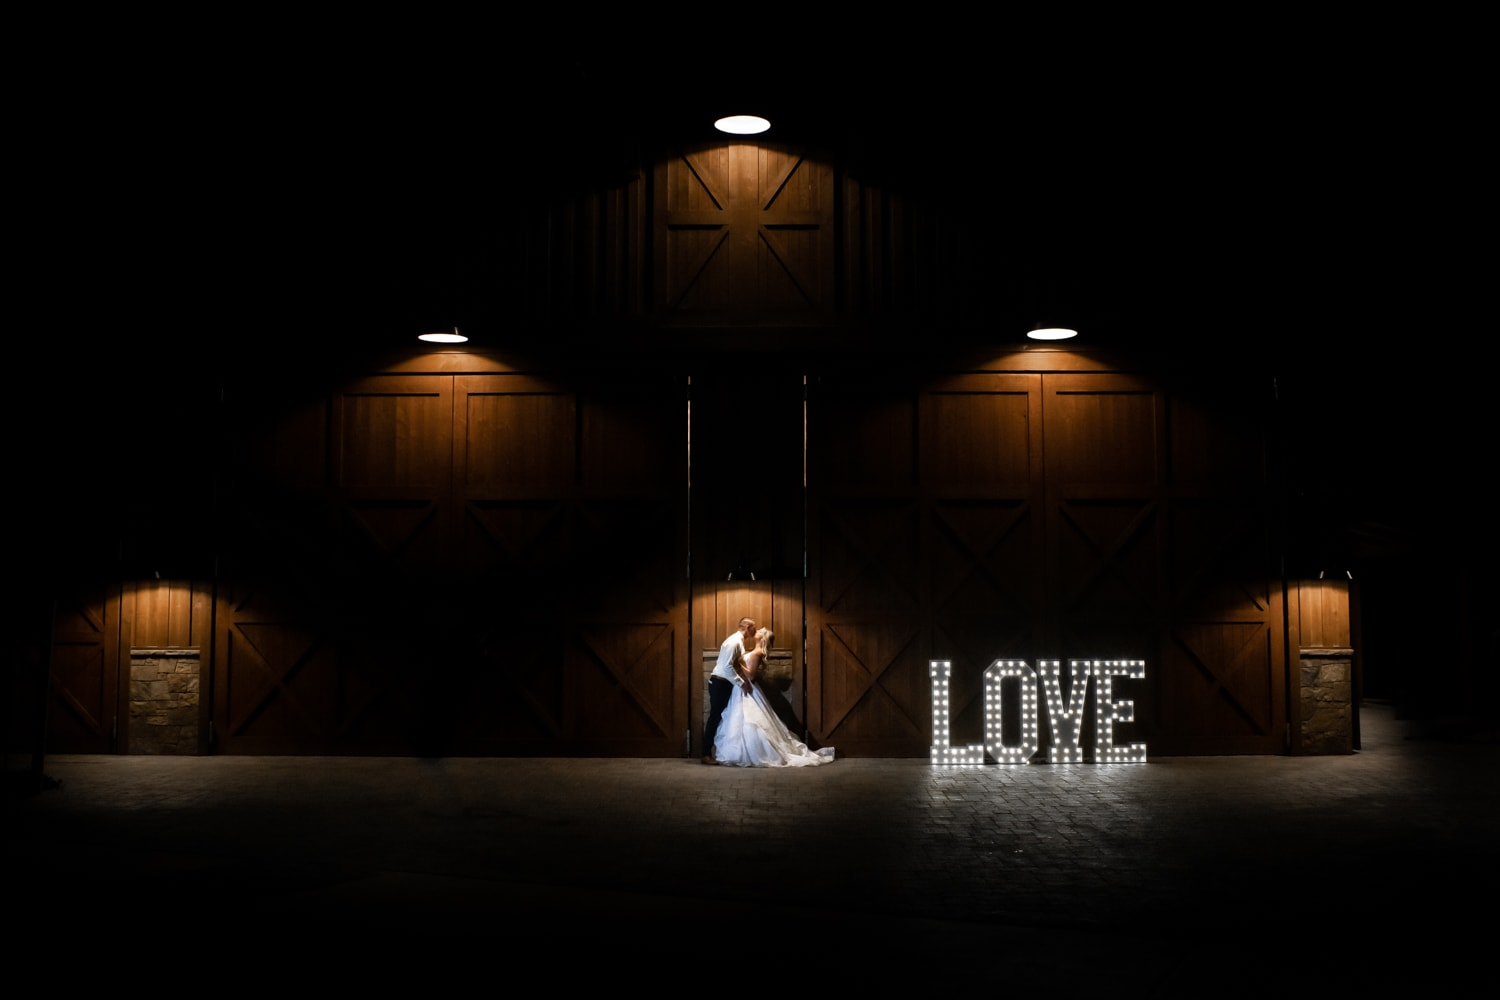 Bride and groom at night in front of a barn.